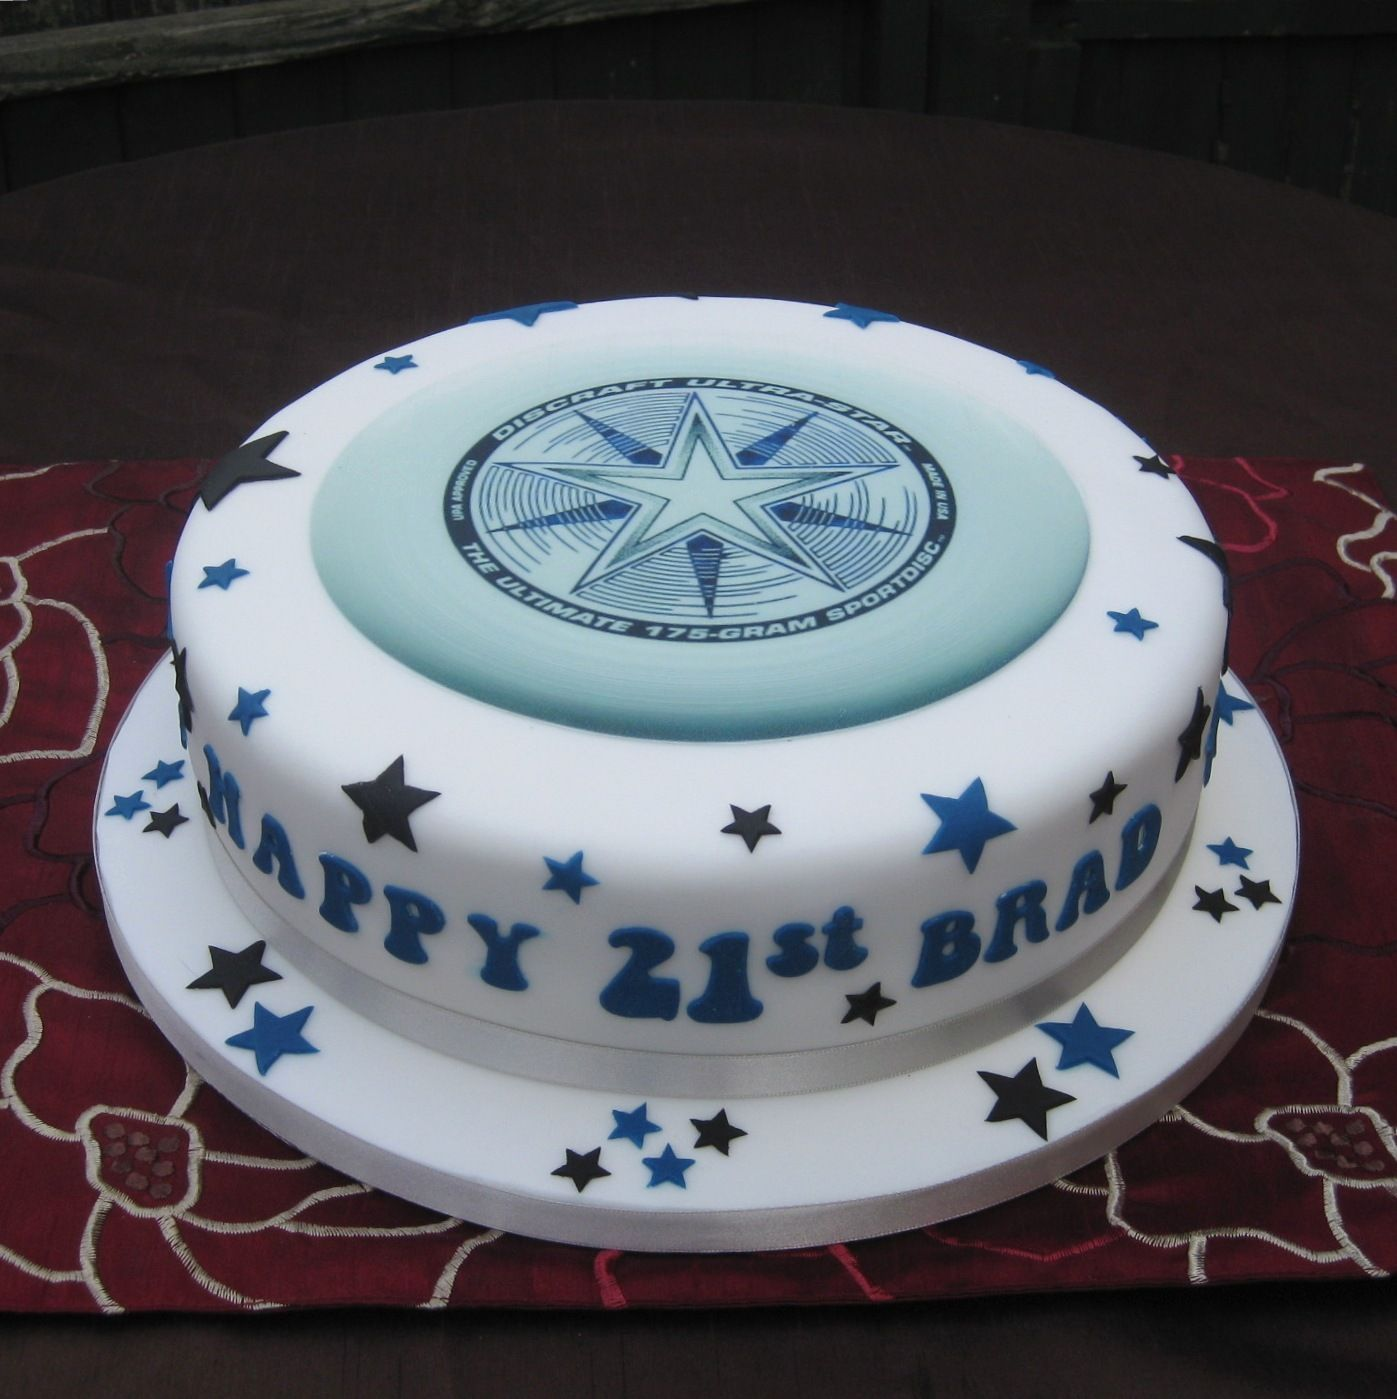 Dallas cowboys birthday cake ideas and designs - Extreme Frisbee Birthday Cake